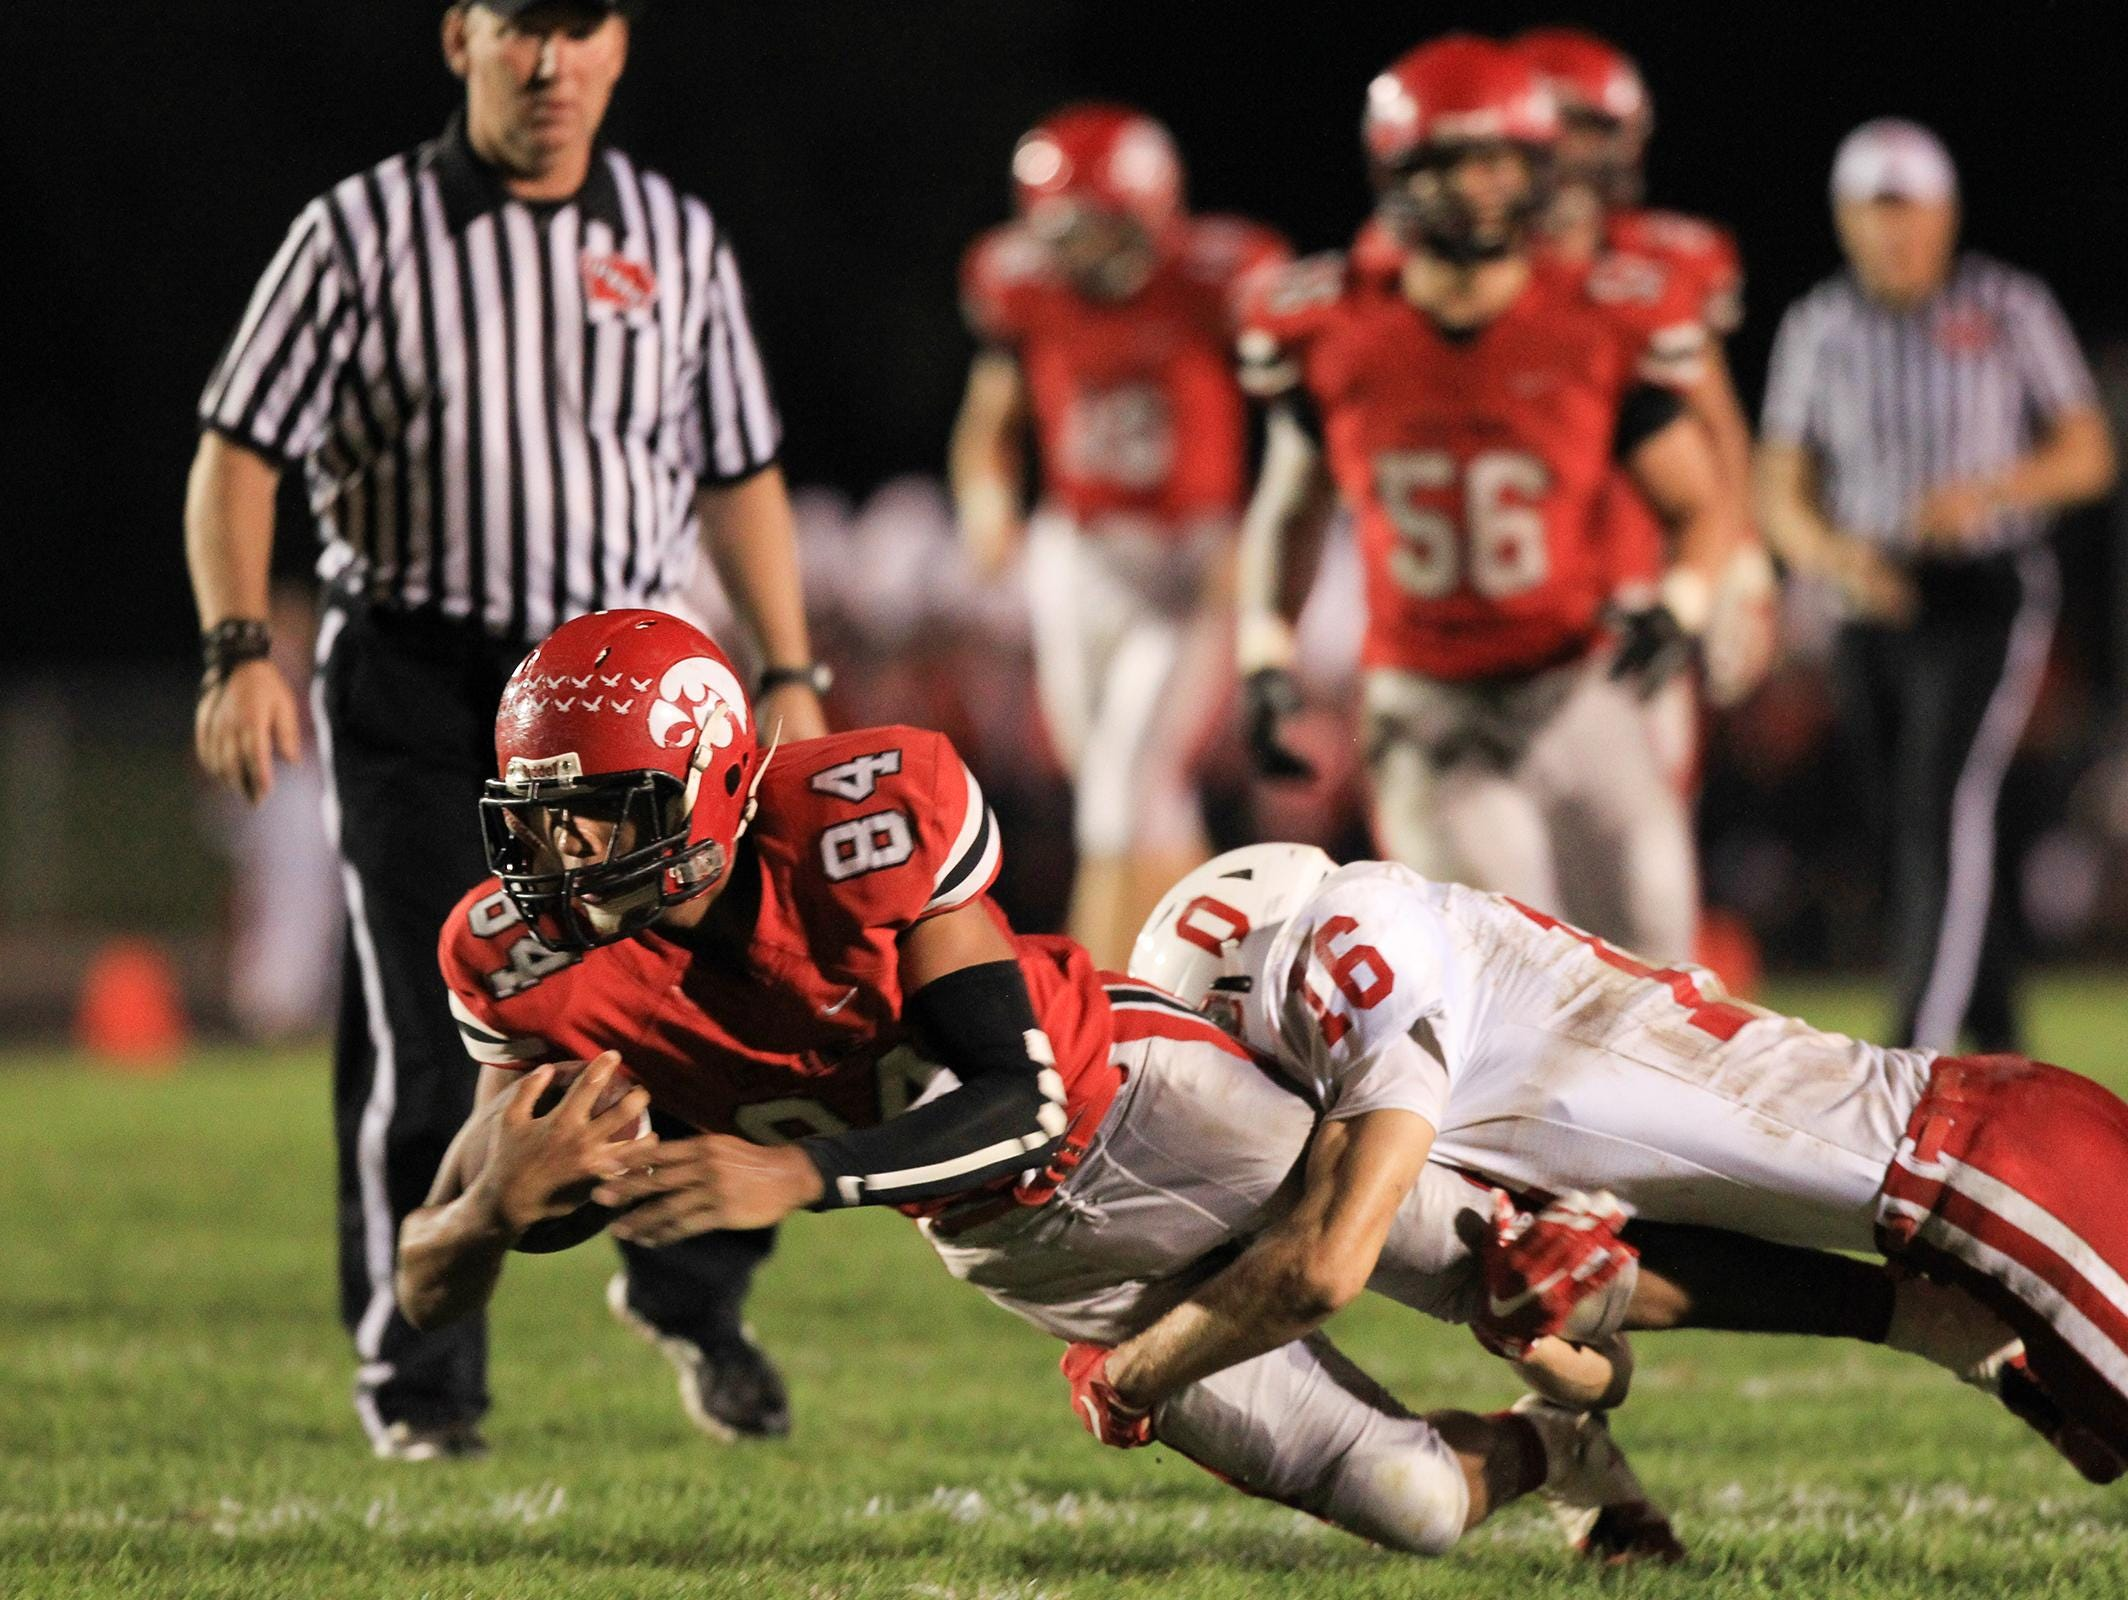 Ottumwa's Jalen Strunk tackles City High's Jason Jones during their game at City High on Friday, Sept. 25, 2015.